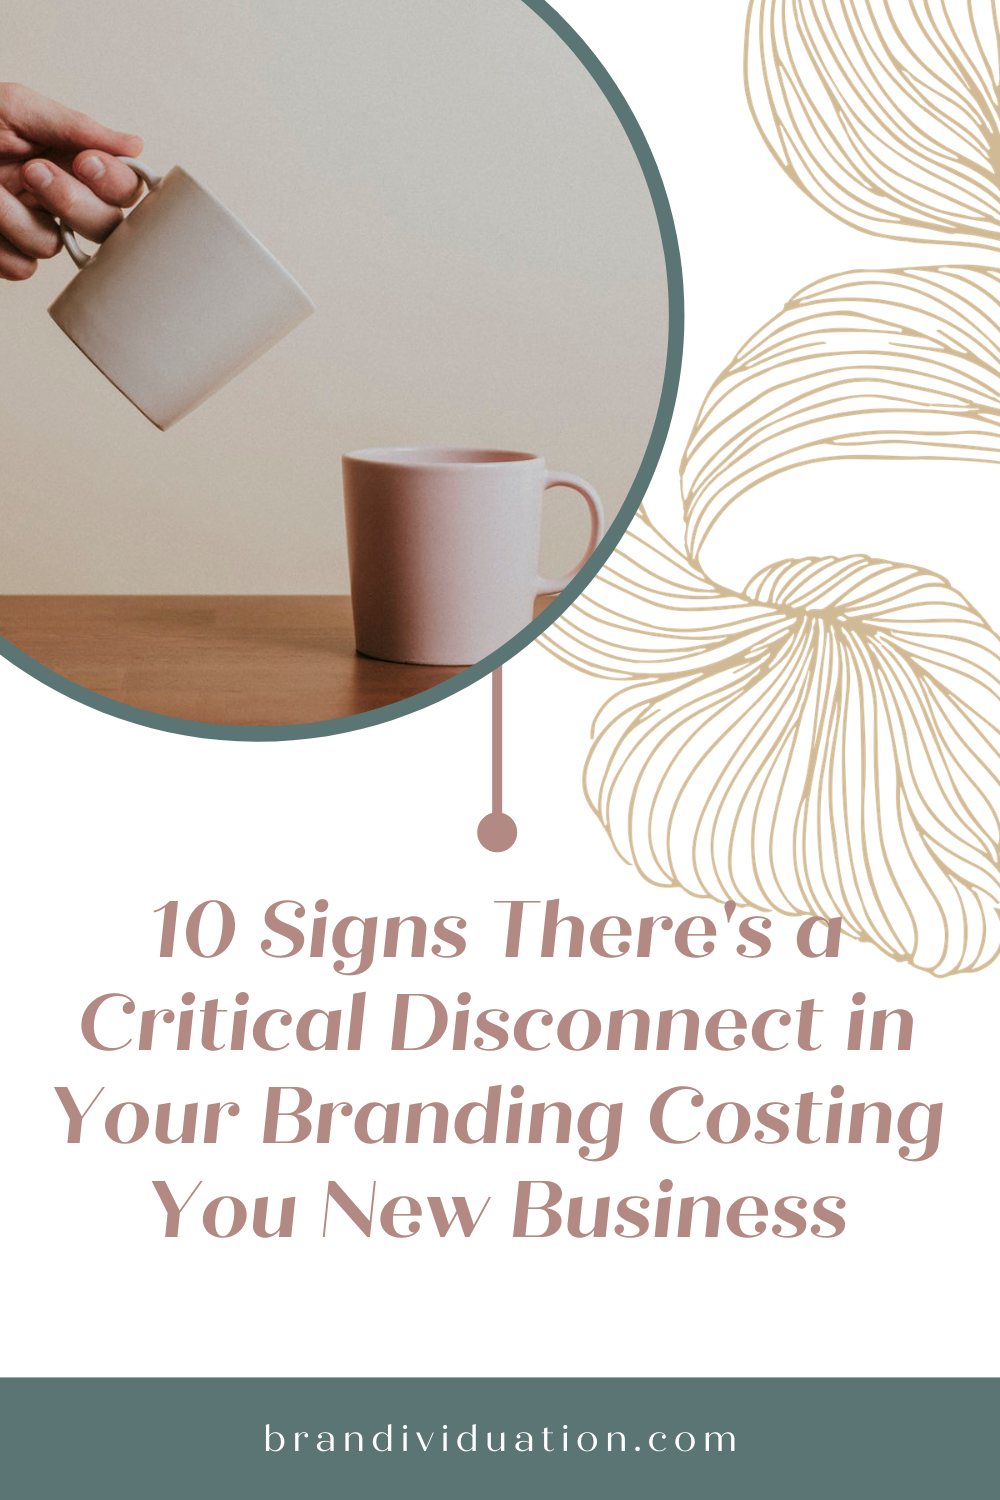 10 Signs There's a Critical Disconnect in Your Branding Costing You New Business